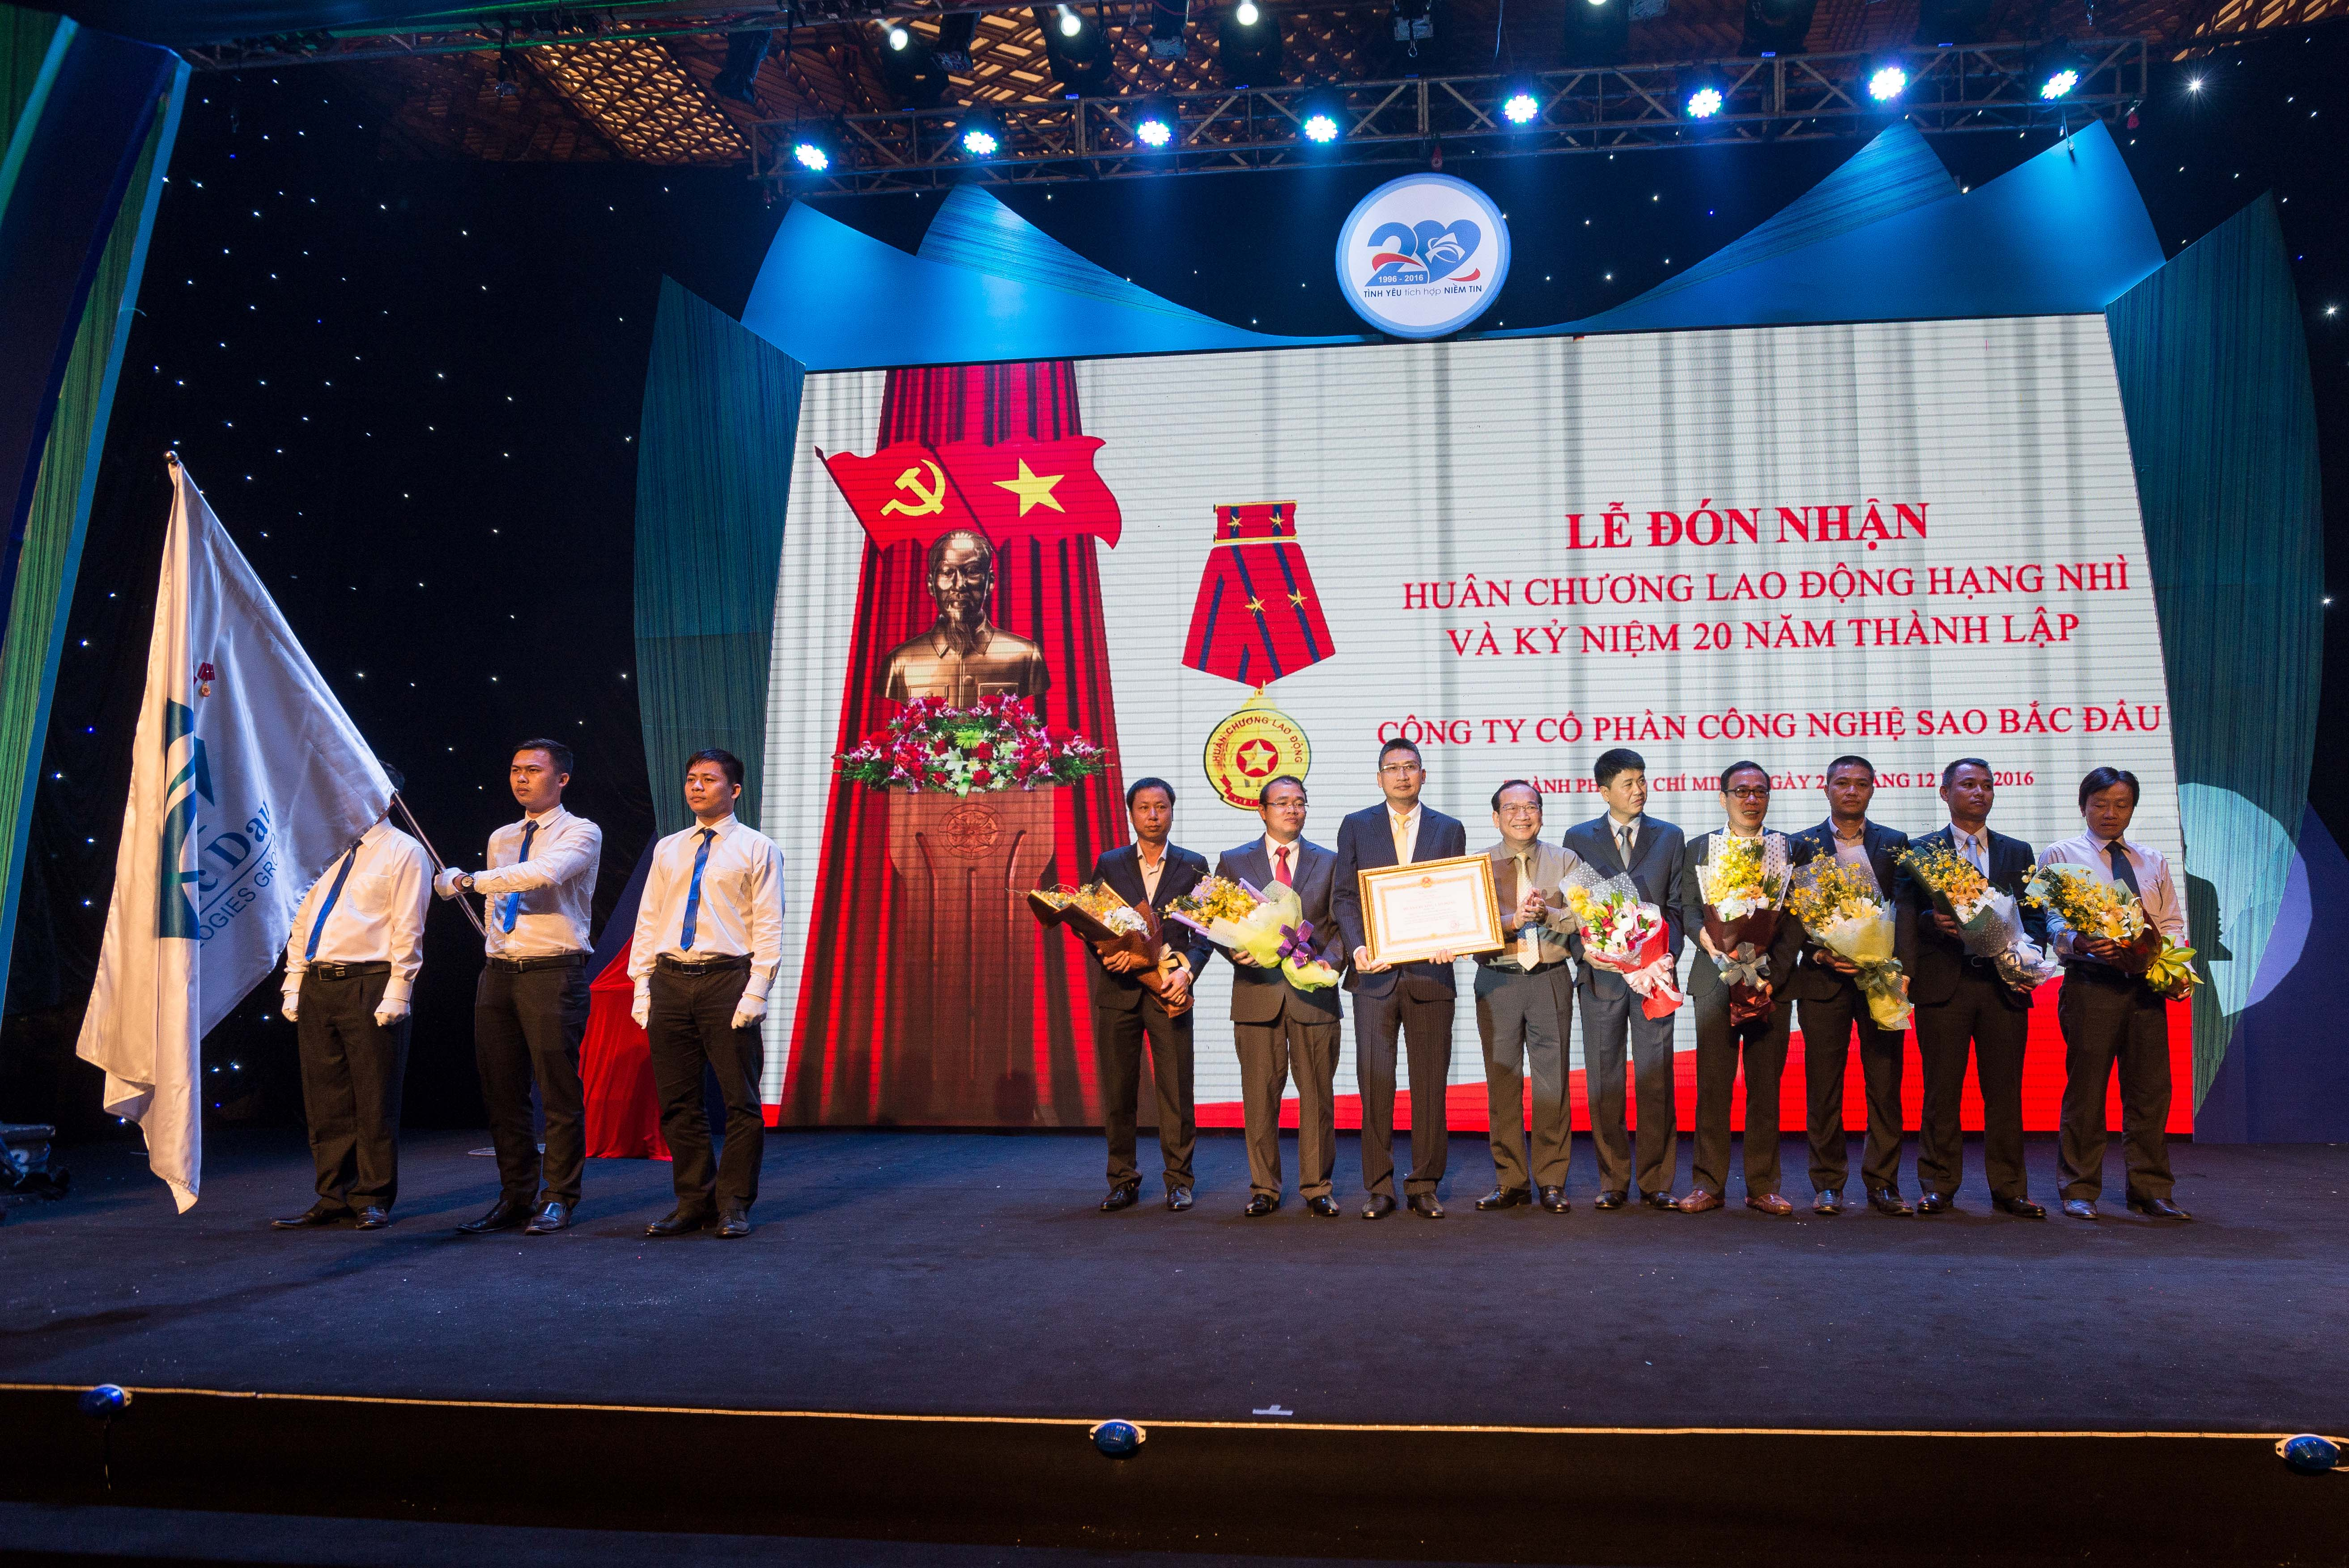 Sao Bac Dau Technology Joint Stock Company Received The Second Labor Medal And The 20th Anniversary Of Its Establishment